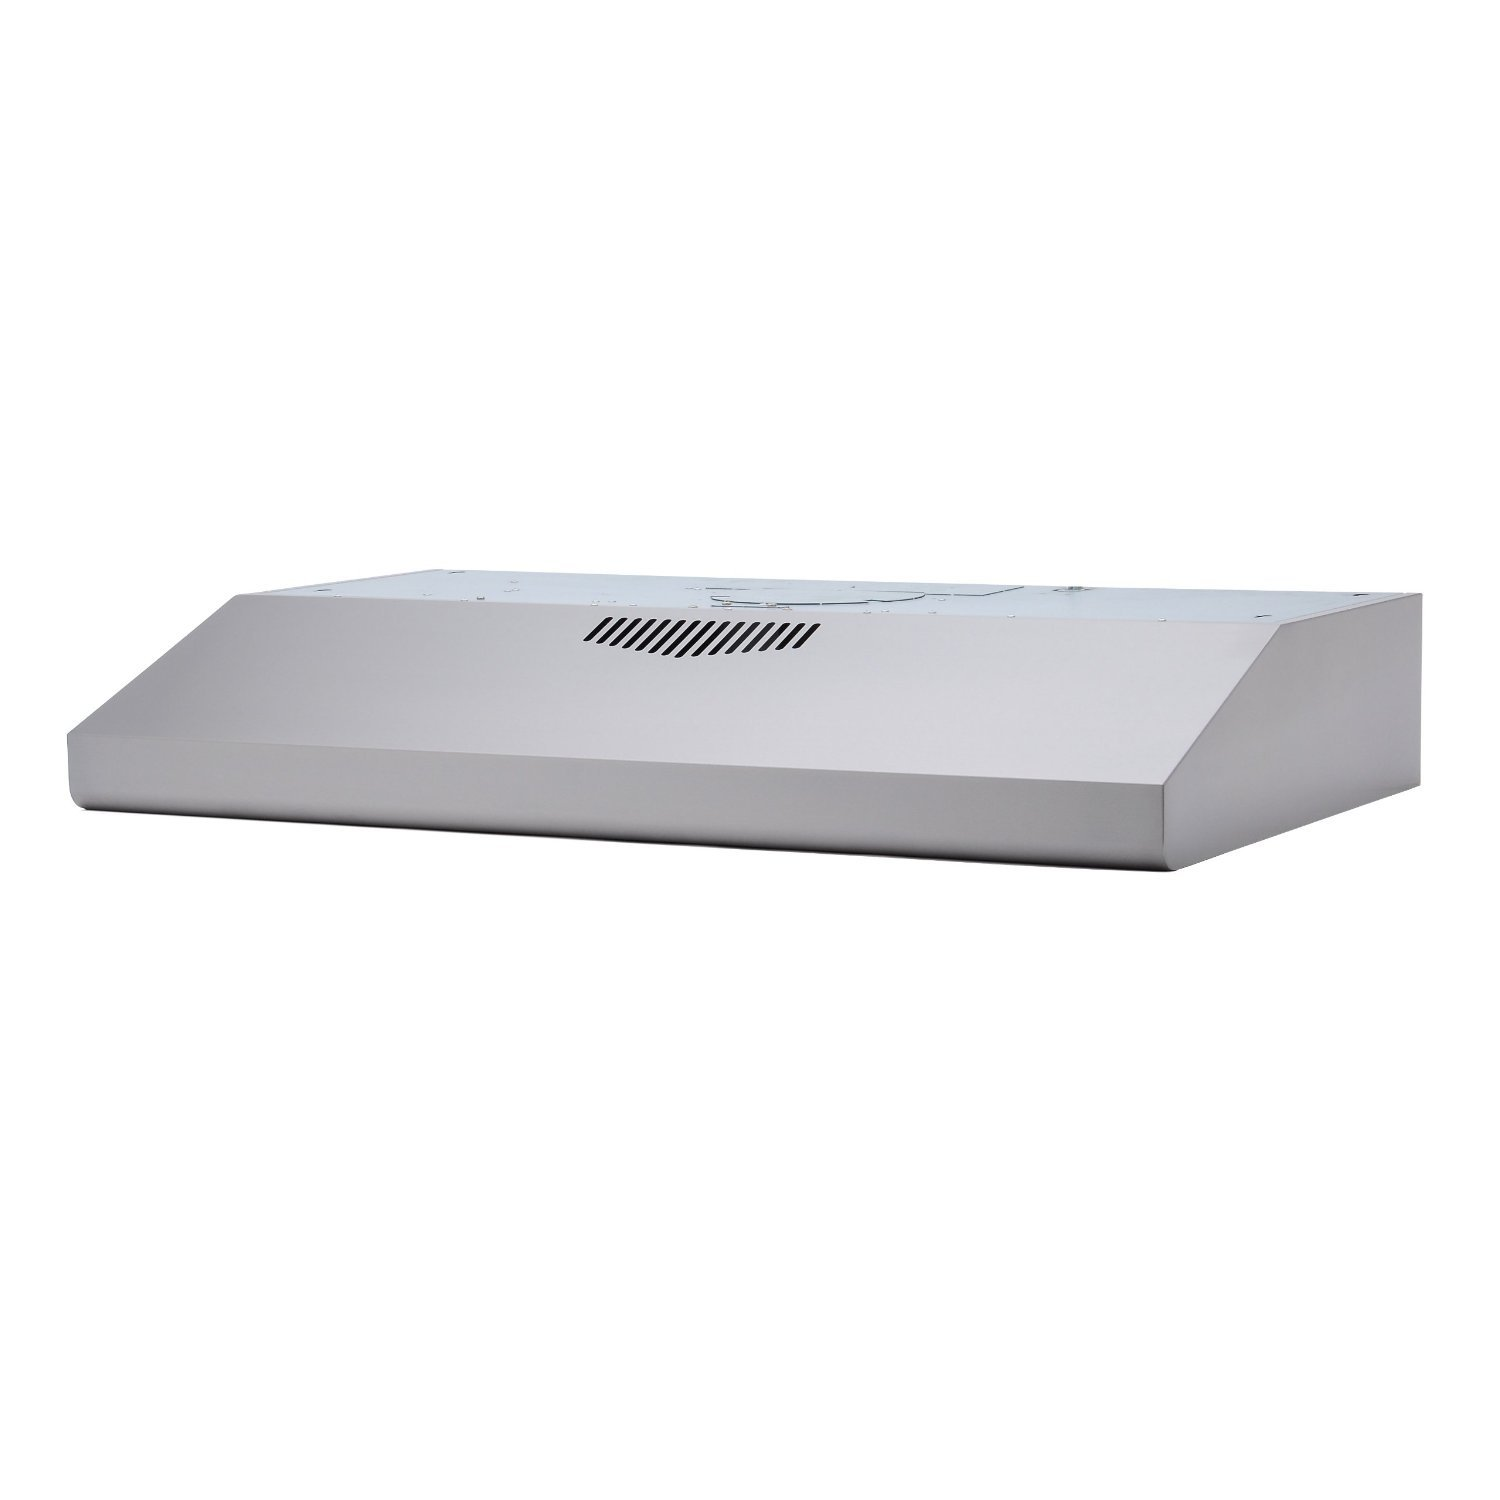 KOBE CHX3030PDS-GC Brillia 30-inch Under Cabinet Range Hood, 3-Speed, 290 CFM, Glass Panel